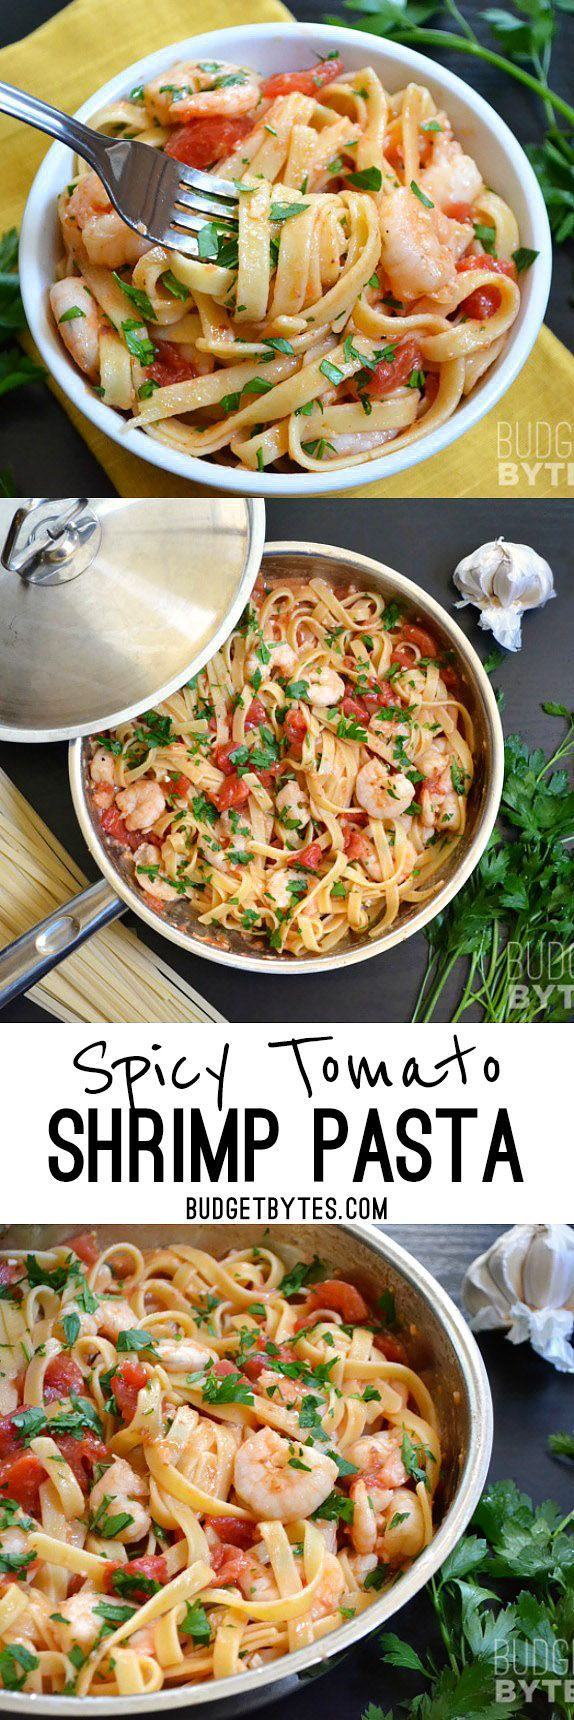 It takes less than 30 minutes to make this super flavorful and filling Spicy Shrimp Tomato Pasta. Dinner made FAST! @budgetbytes